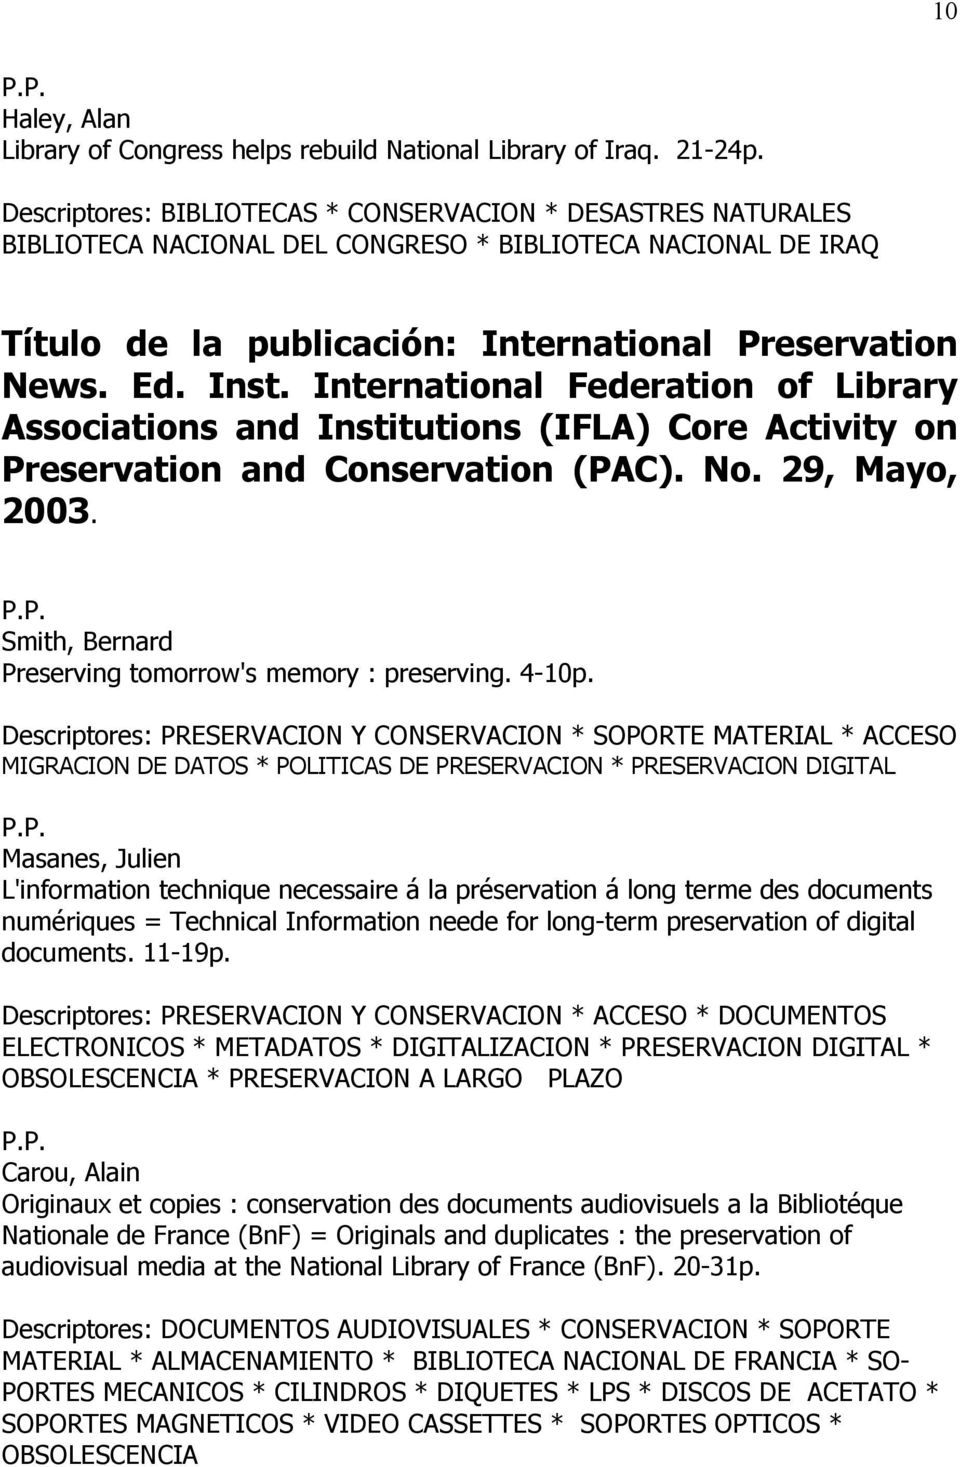 International Federation of Library Associations and Institutions (IFLA) Core Activity on Preservation and Conservation (PAC). No. 29, Mayo, 2003.